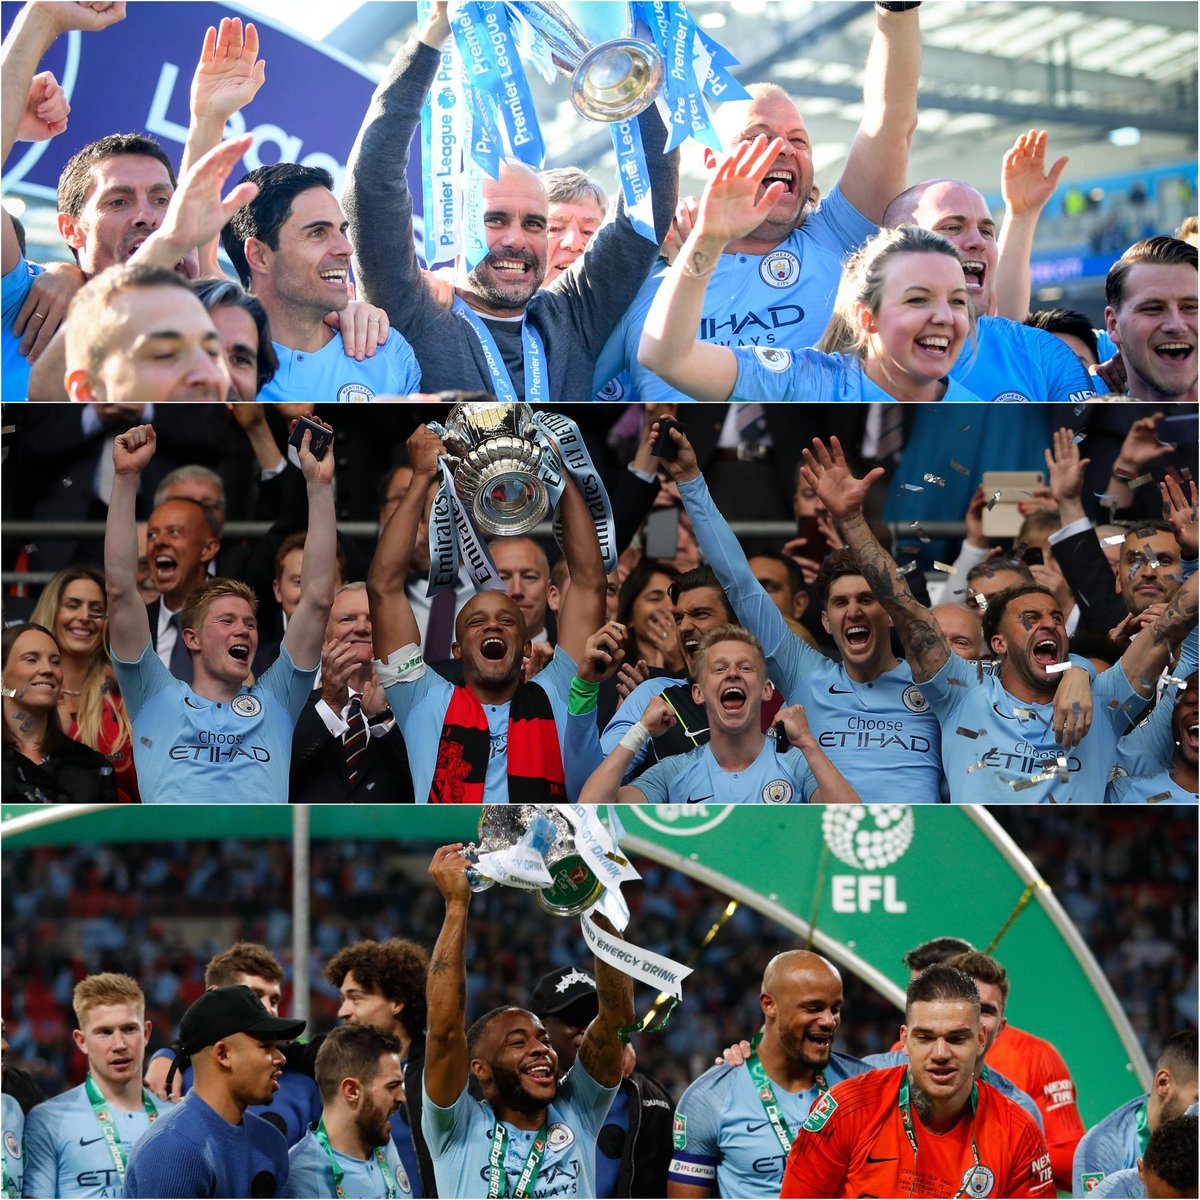 The first team to win the Premier League, FA Cup & EFL Cup in the same season - @ManCity 🏆🏆🏆 #MondayMotivation